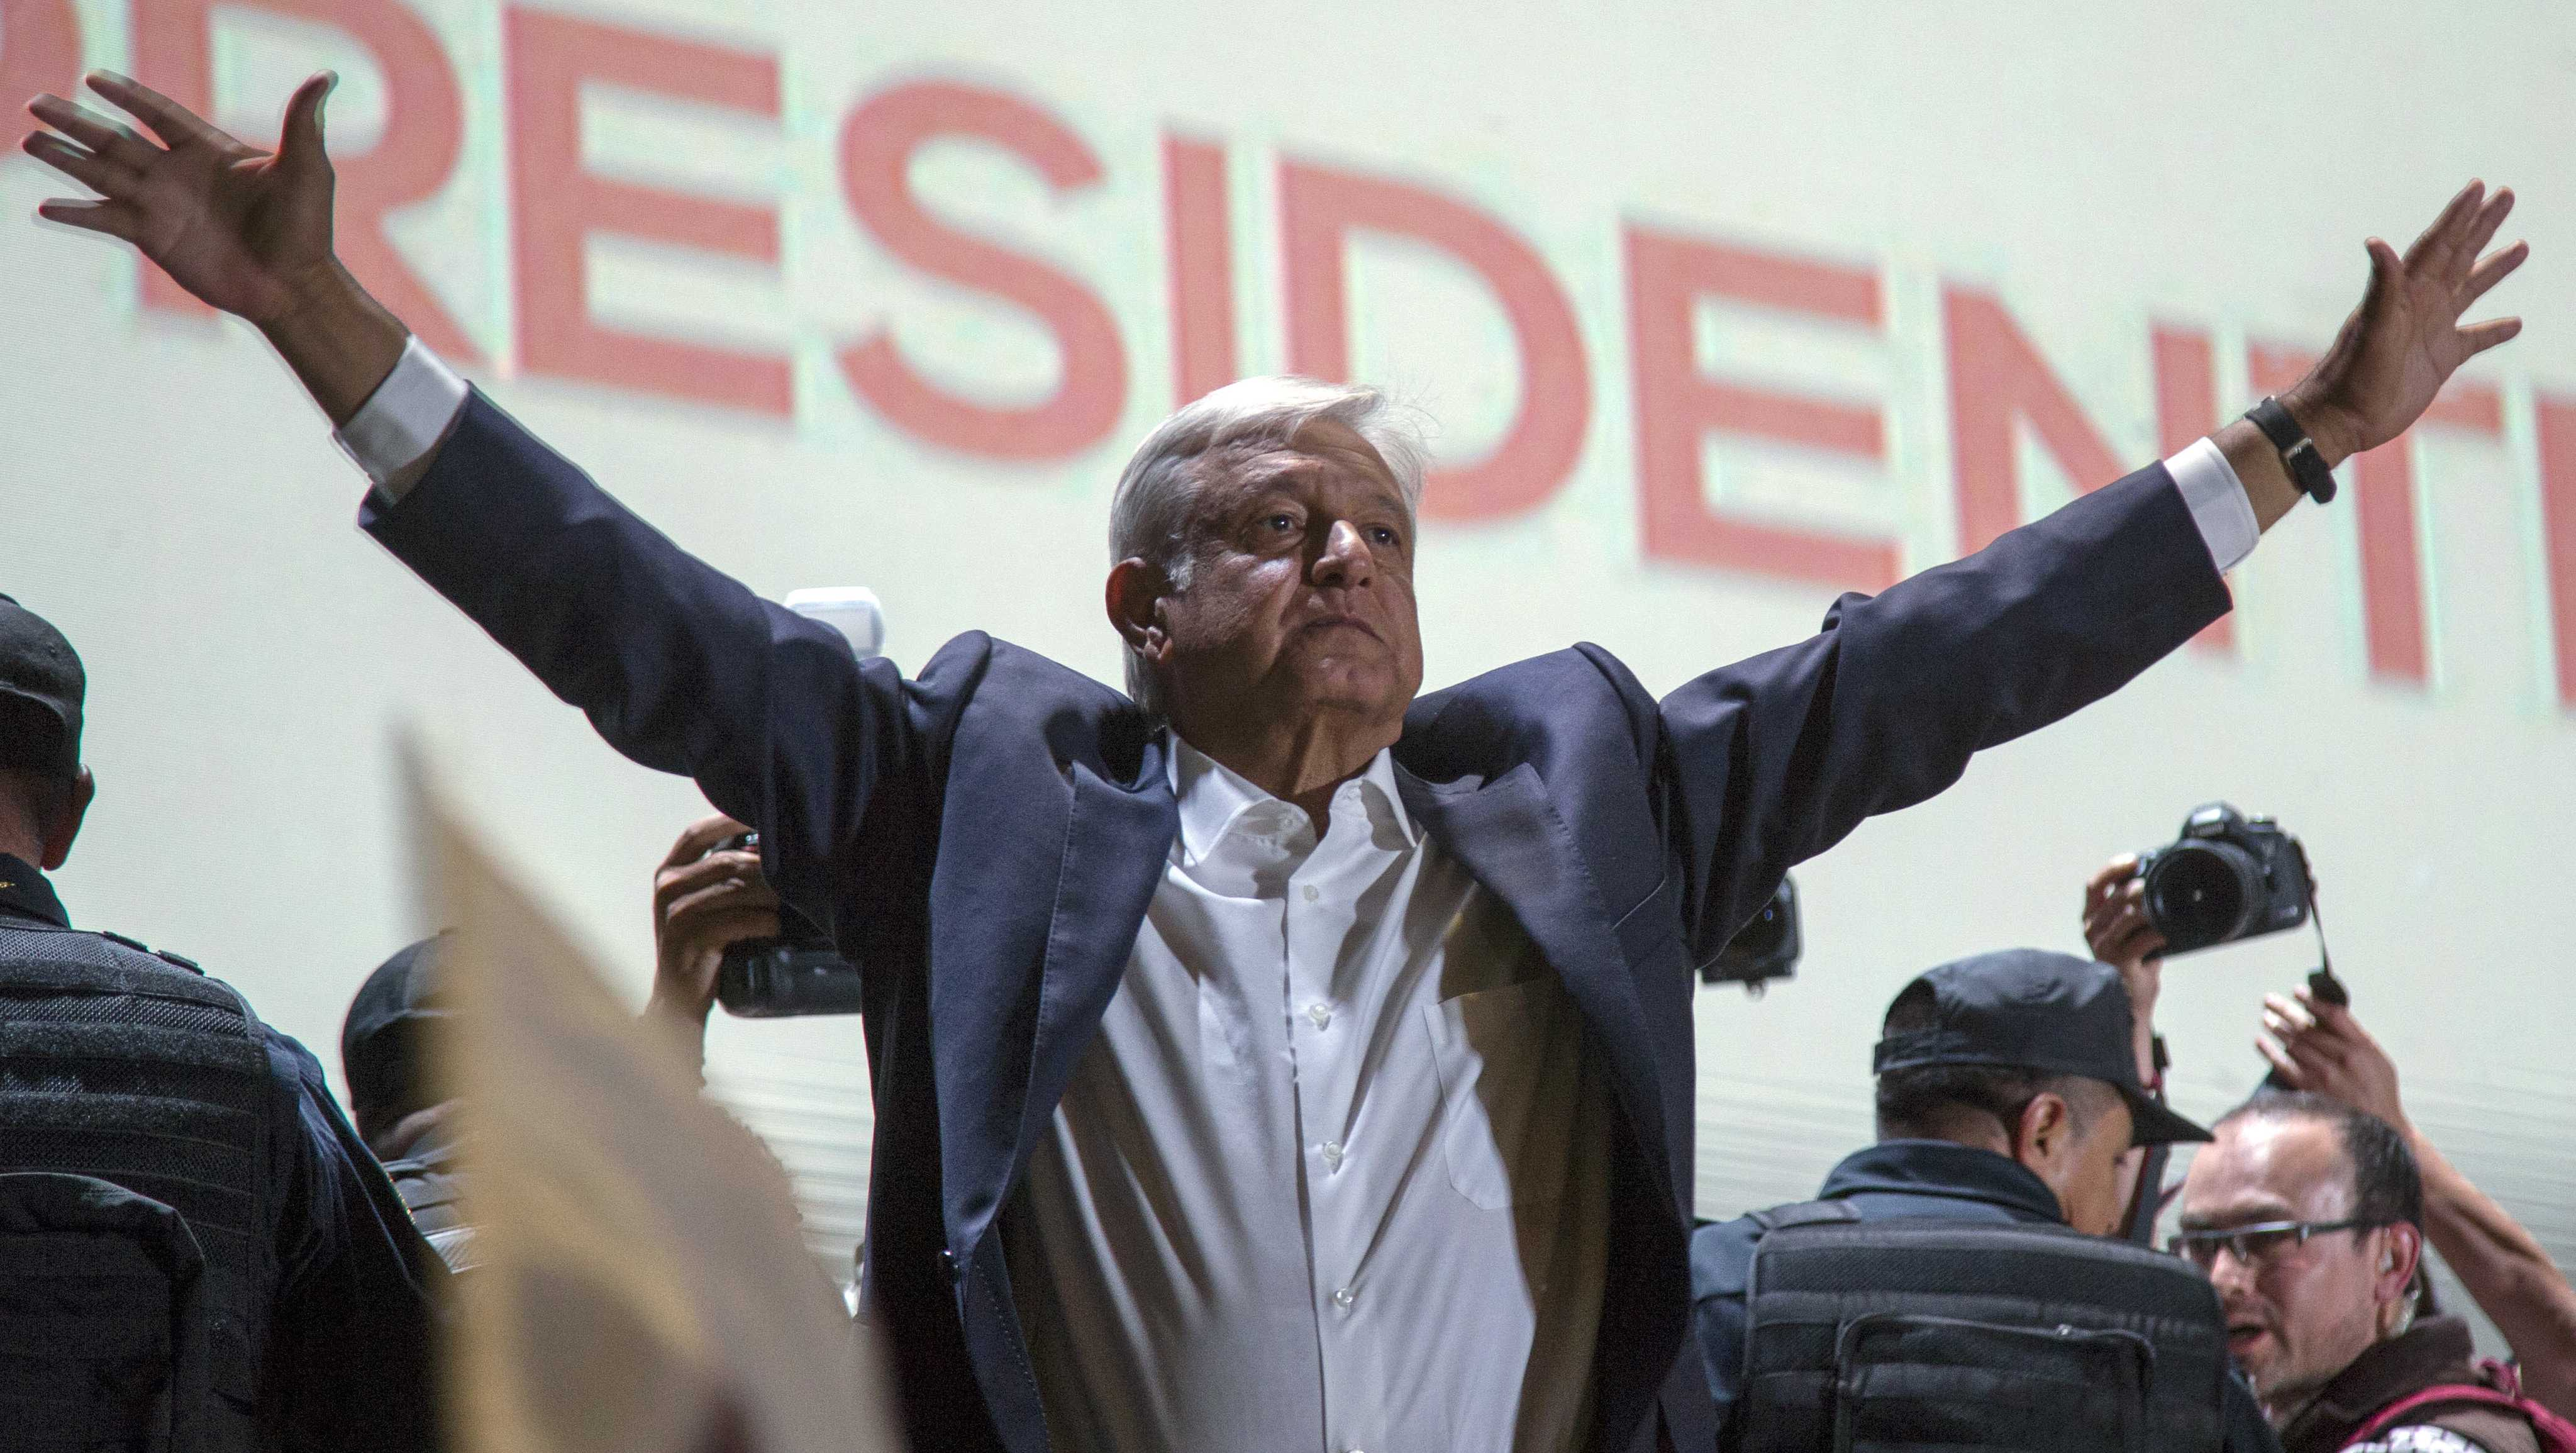 Presidential candidate Andres Manuel Lopez Obrador acknowledges his supporters as he arrives to Mexico City's main square, the Zocalo, Sunday, July 1, 2018. Lopez Obrador has claimed victory in Mexico's presidential election, calling for reconciliation.